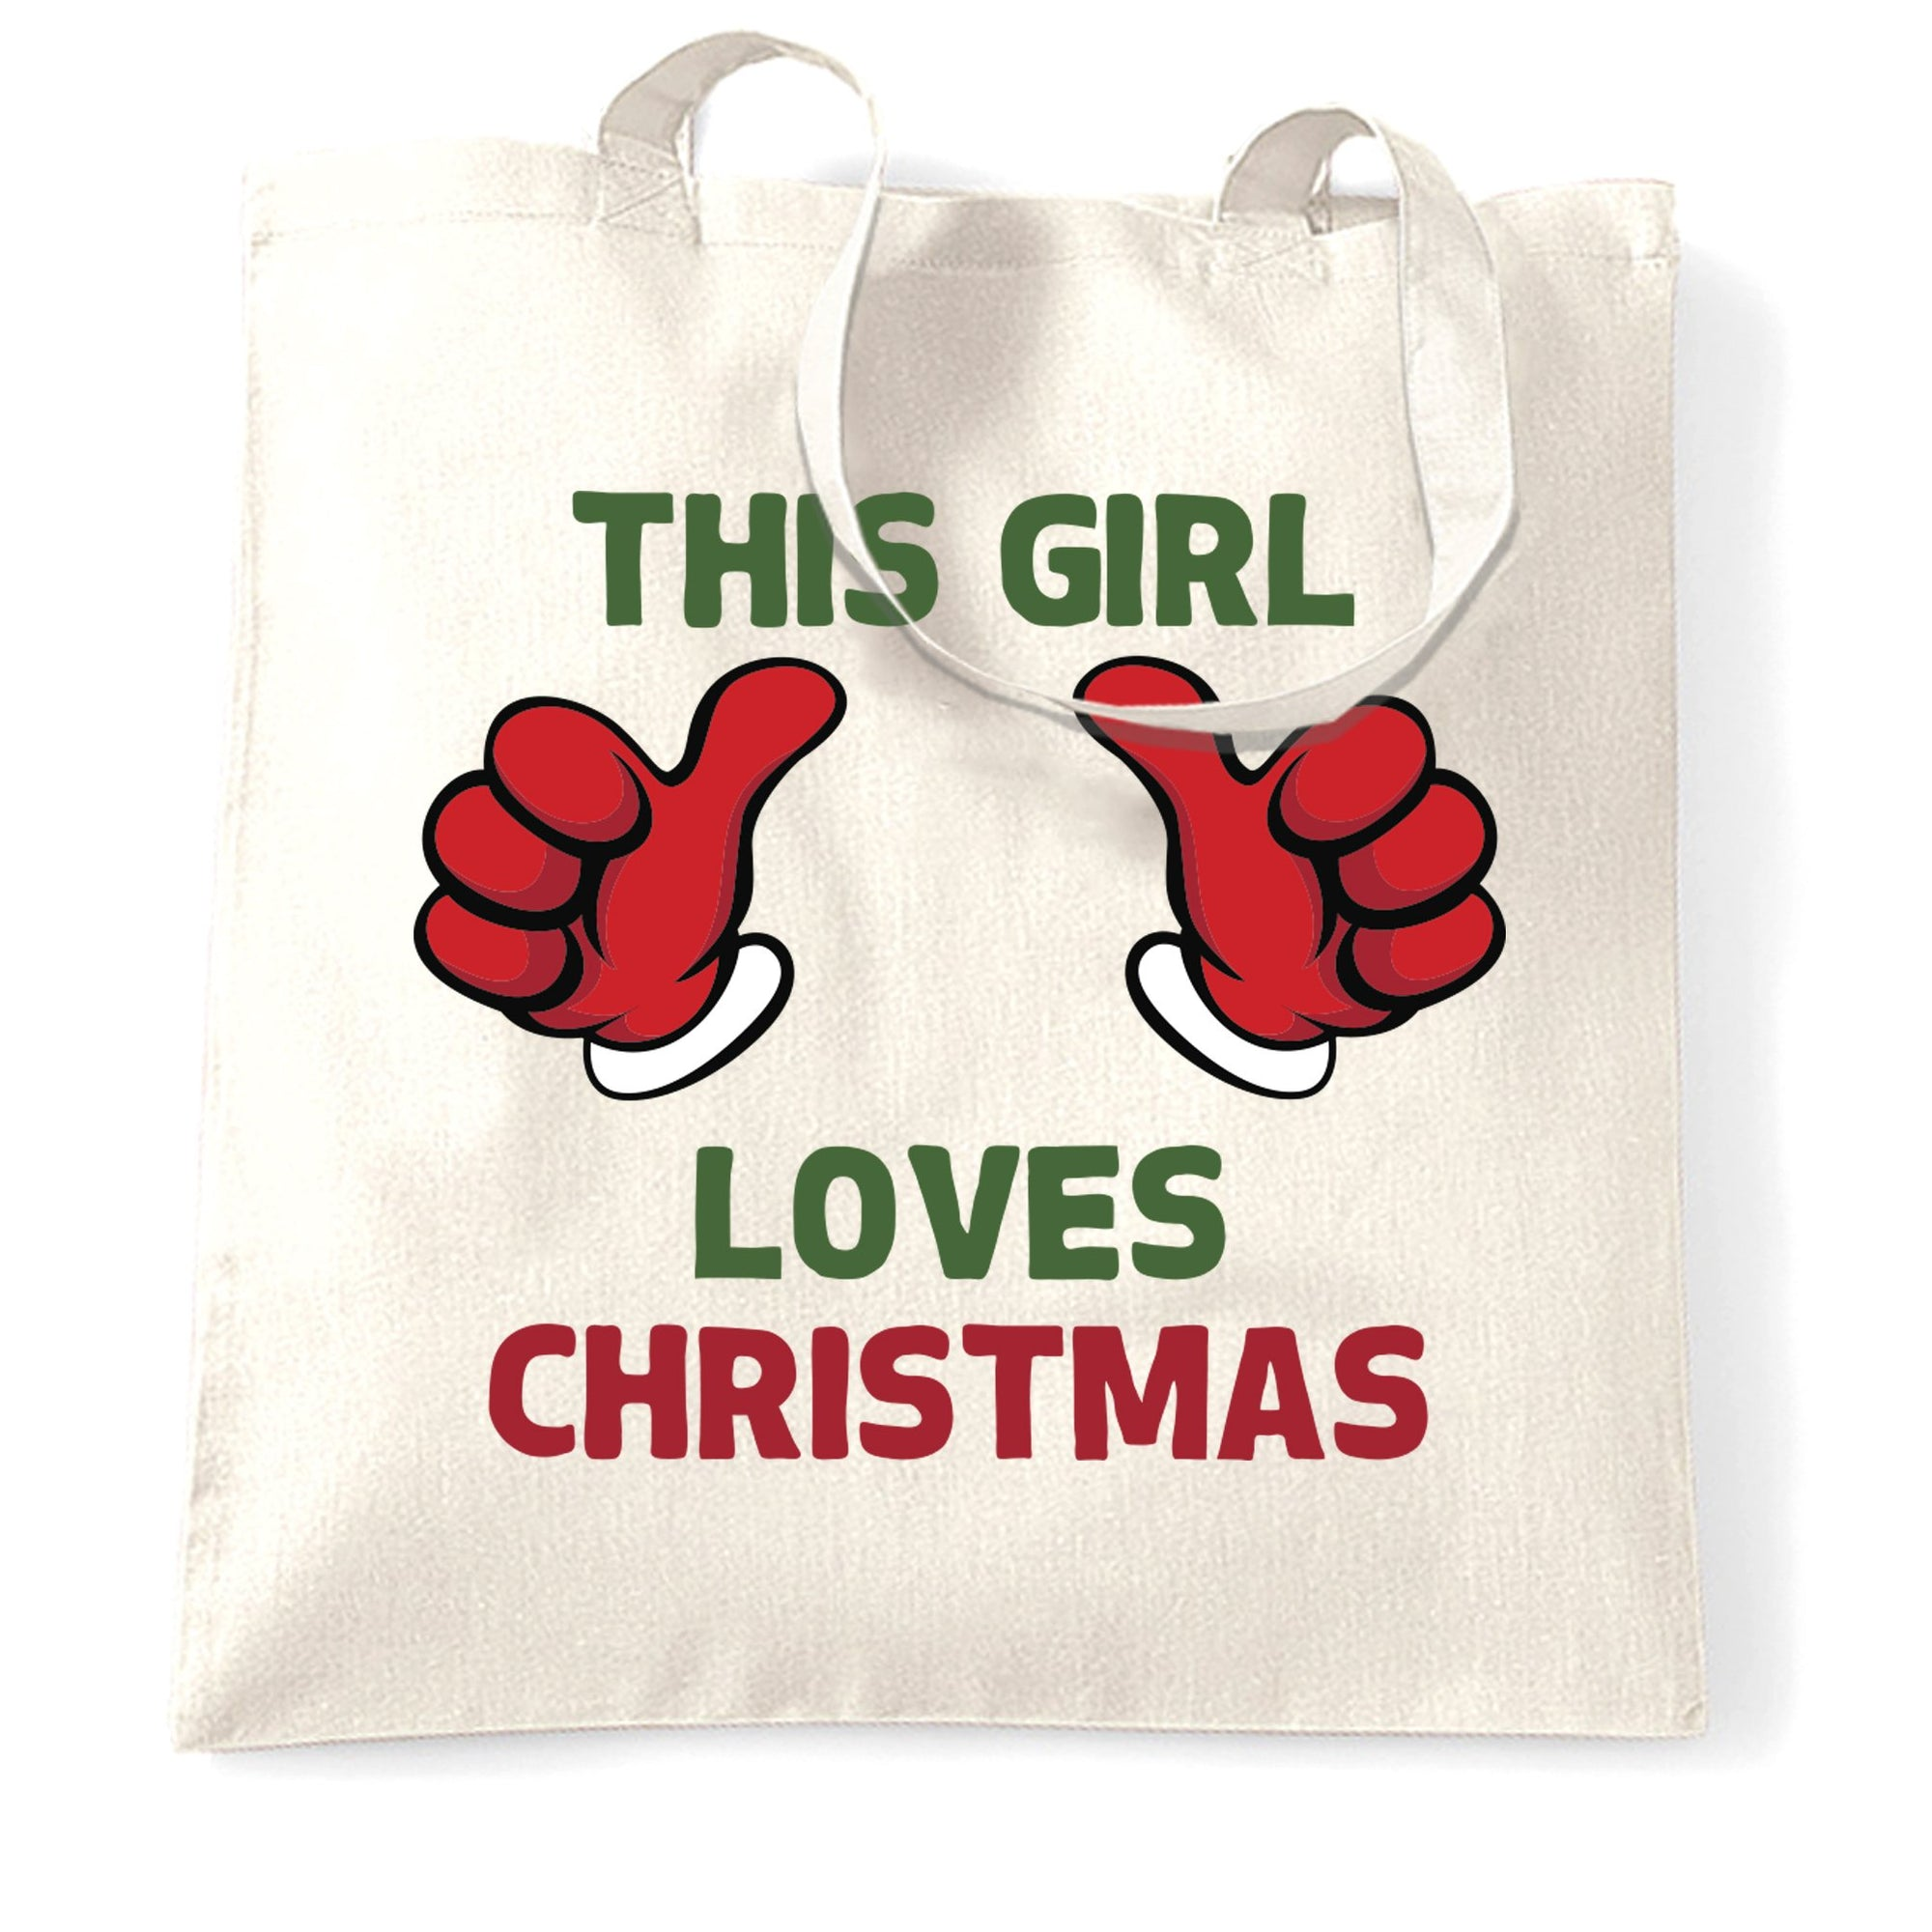 Novelty Christmas Tote Bag This Girl Loves Christmas